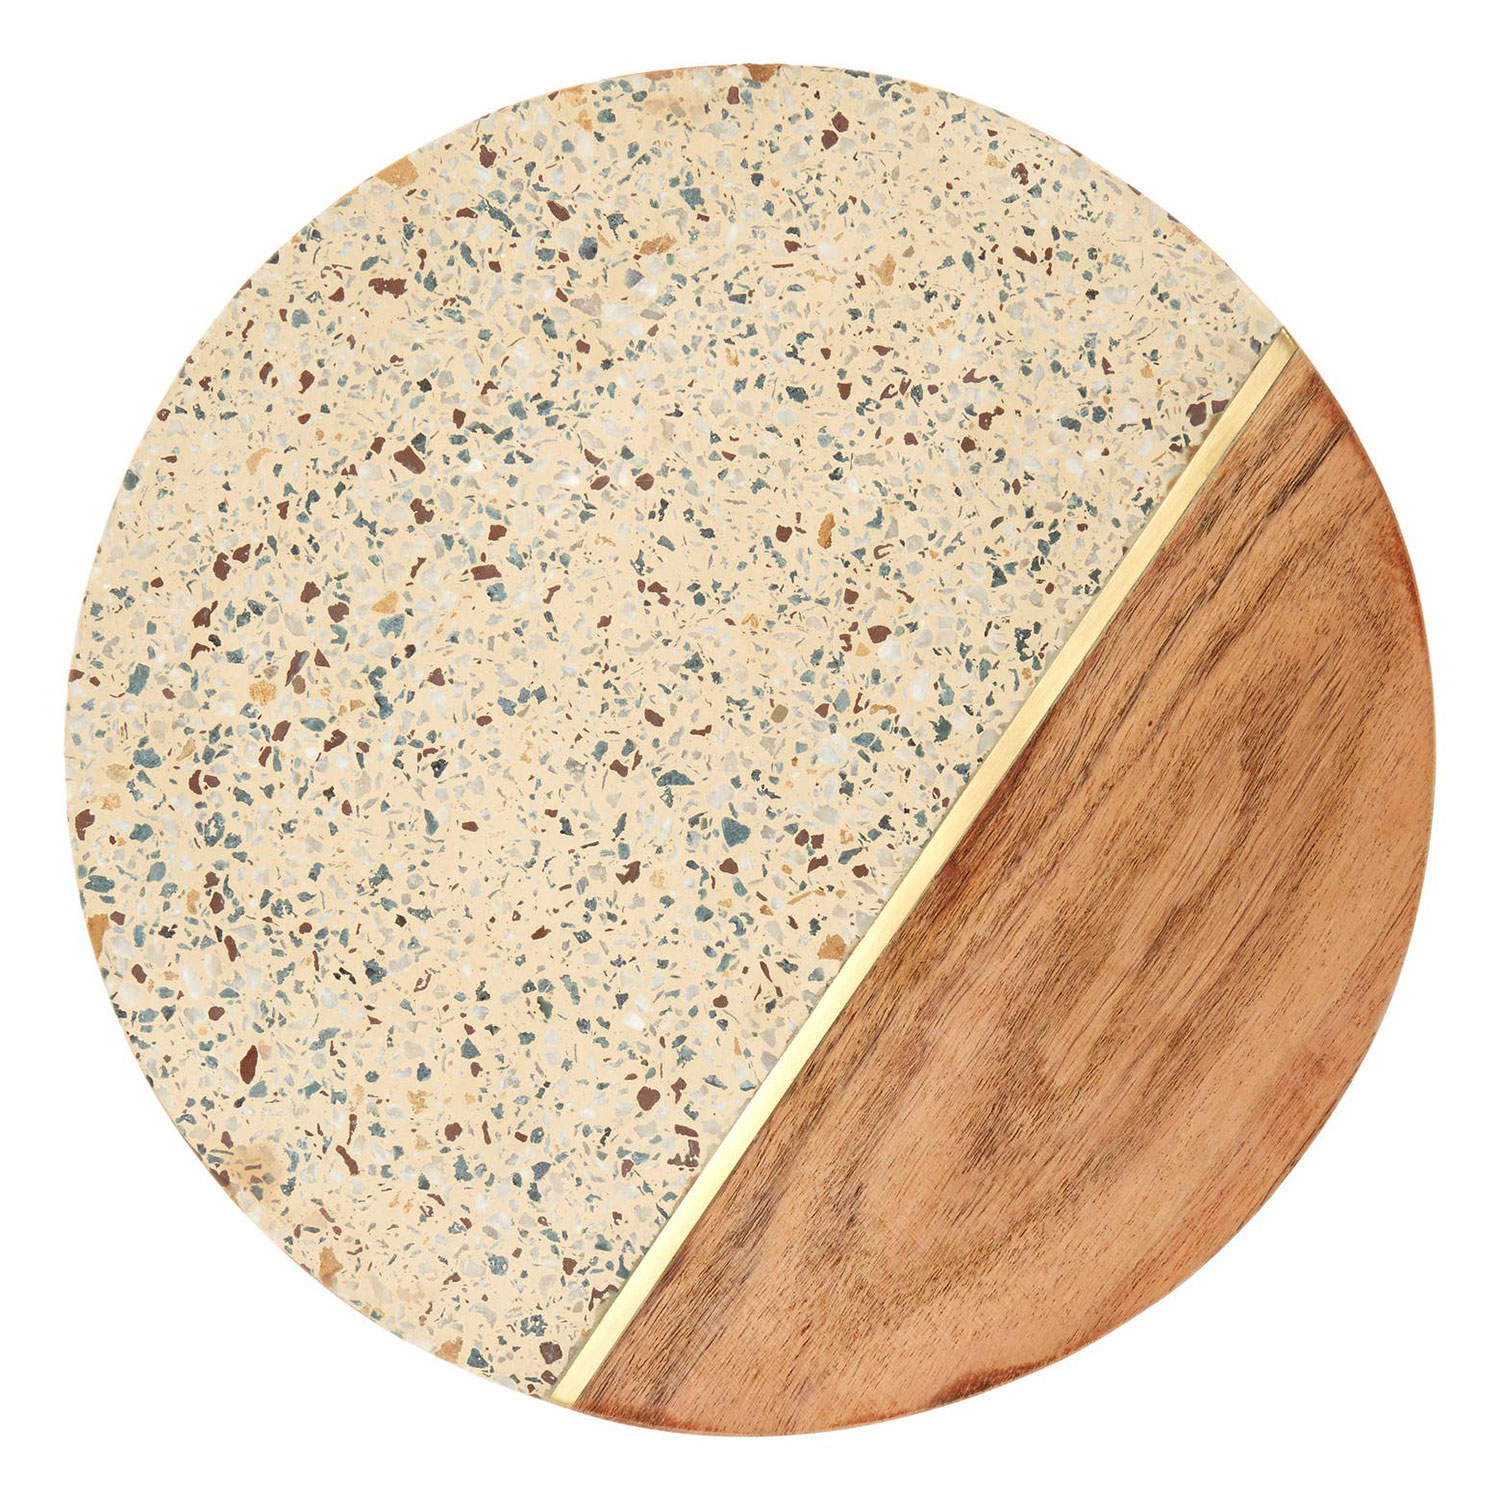 terrrazzo round serving board